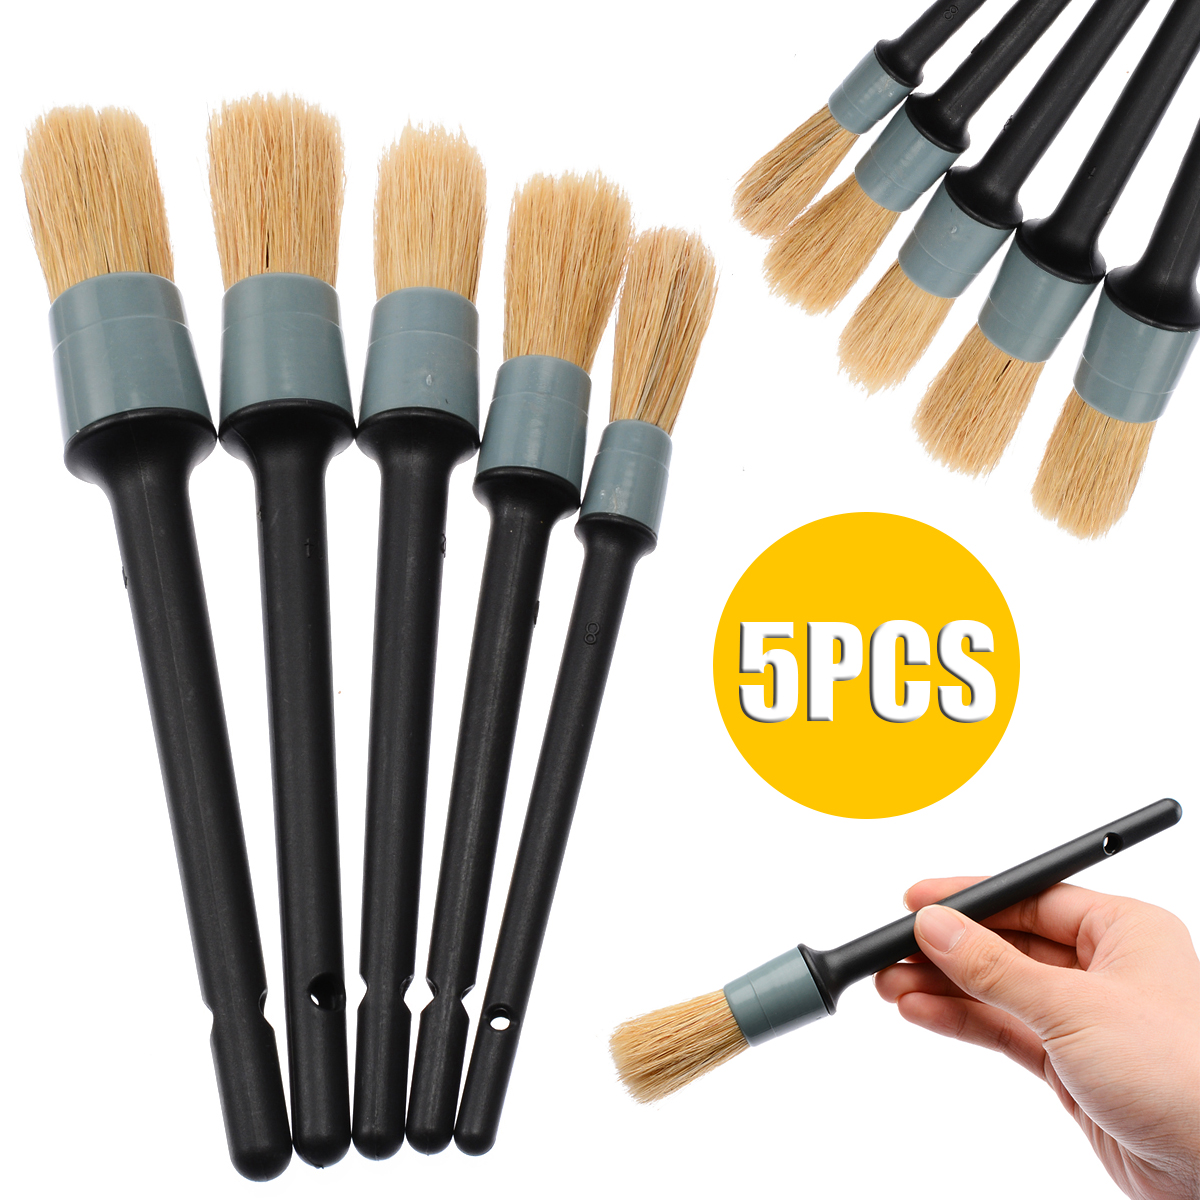 5Pcs Car Detailing Brush Cleaning Natural Soft Brushes Auto Detail Tools Products Wheels Dashboard Car-styling Accessories